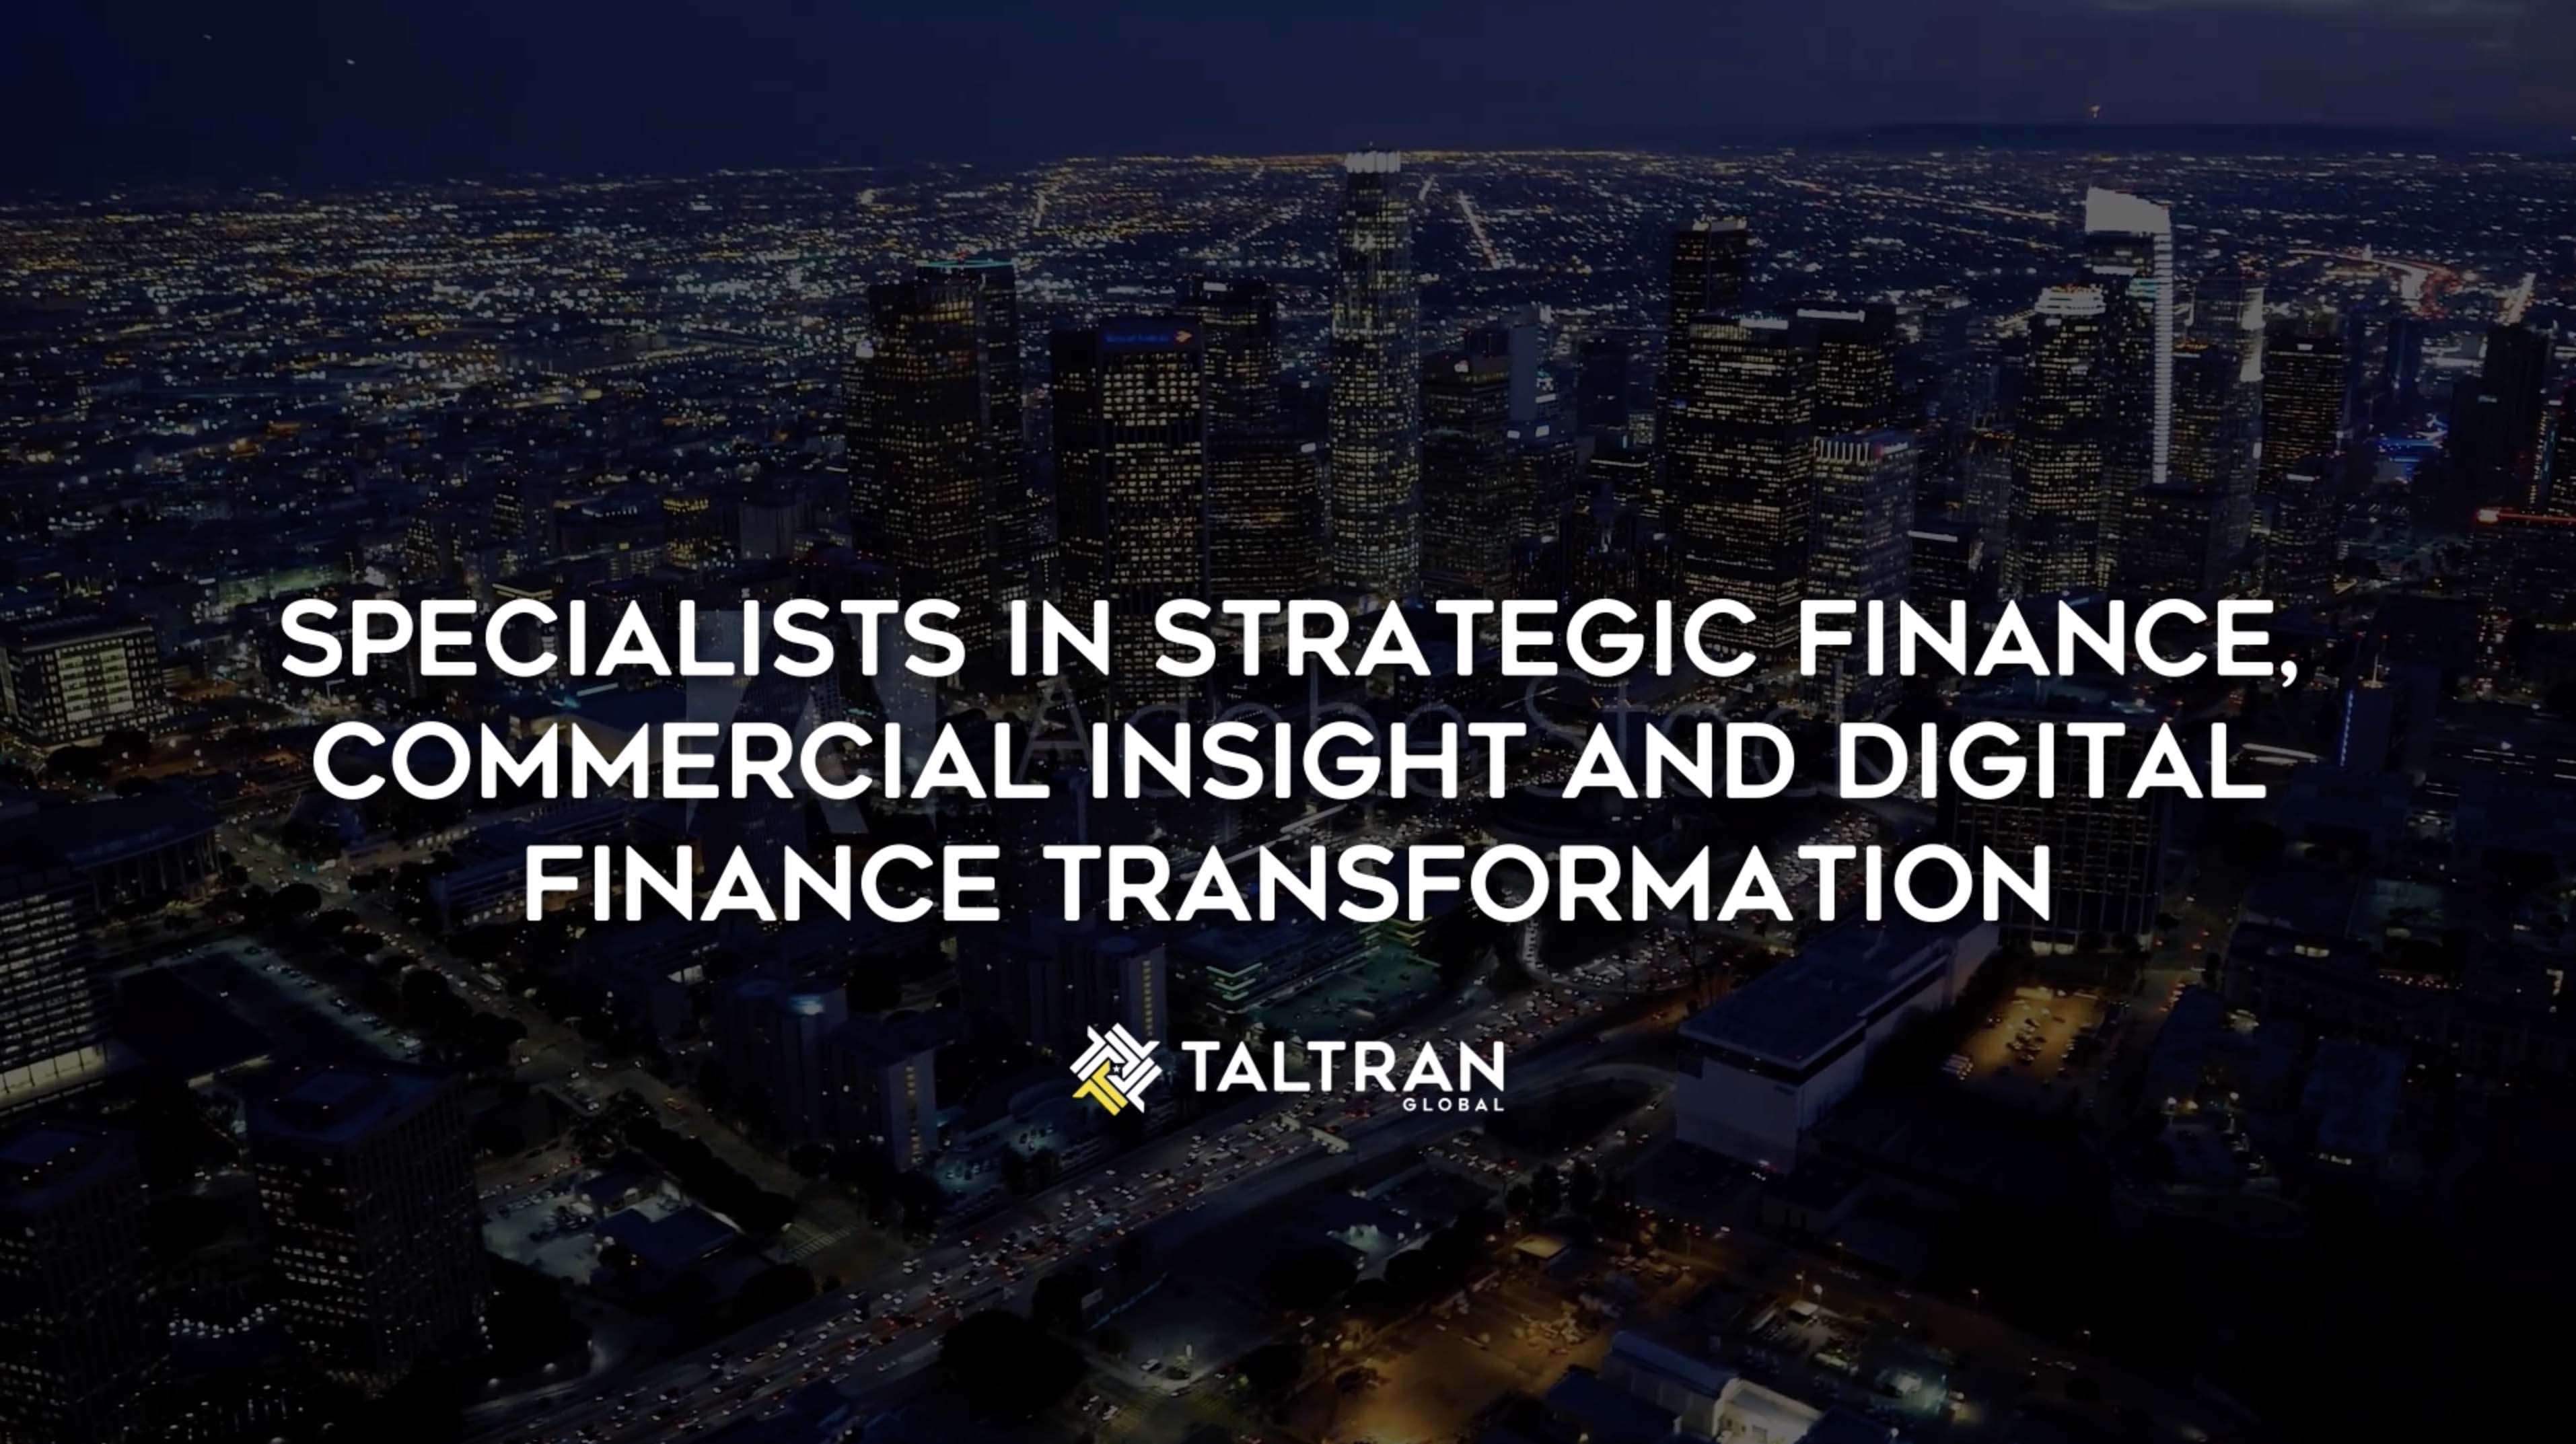 TALTRAN Growth – Media Release